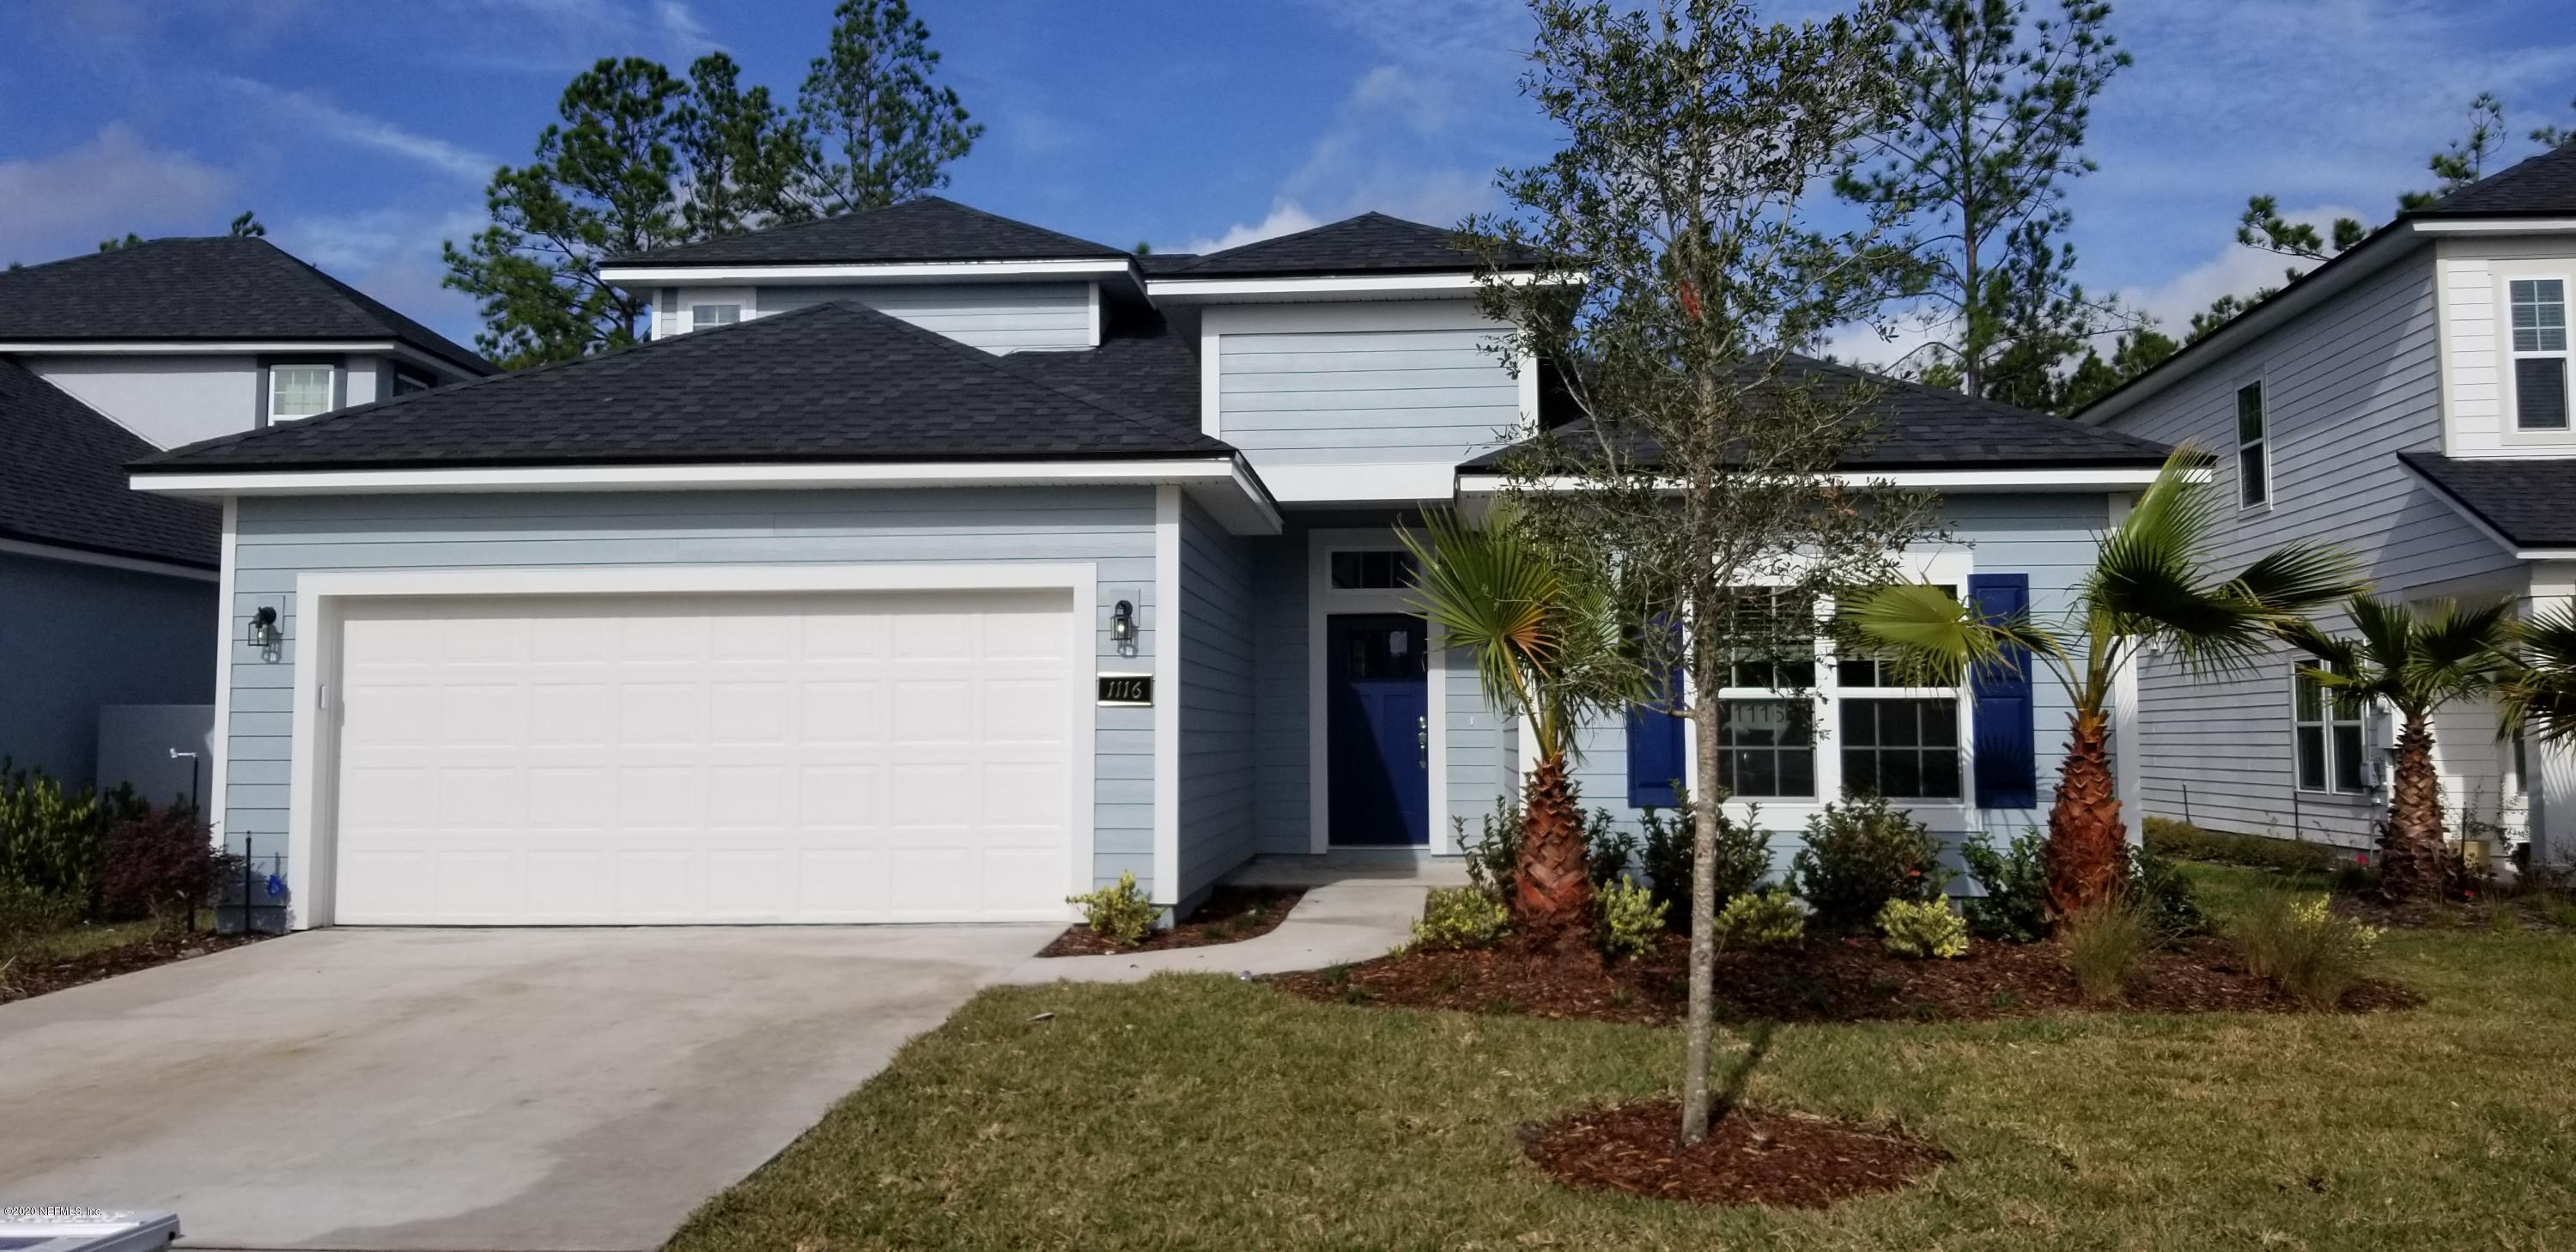 1116 LAUREL VALLEY, ORANGE PARK, FLORIDA 32065, 4 Bedrooms Bedrooms, ,3 BathroomsBathrooms,Residential,For sale,LAUREL VALLEY,989506